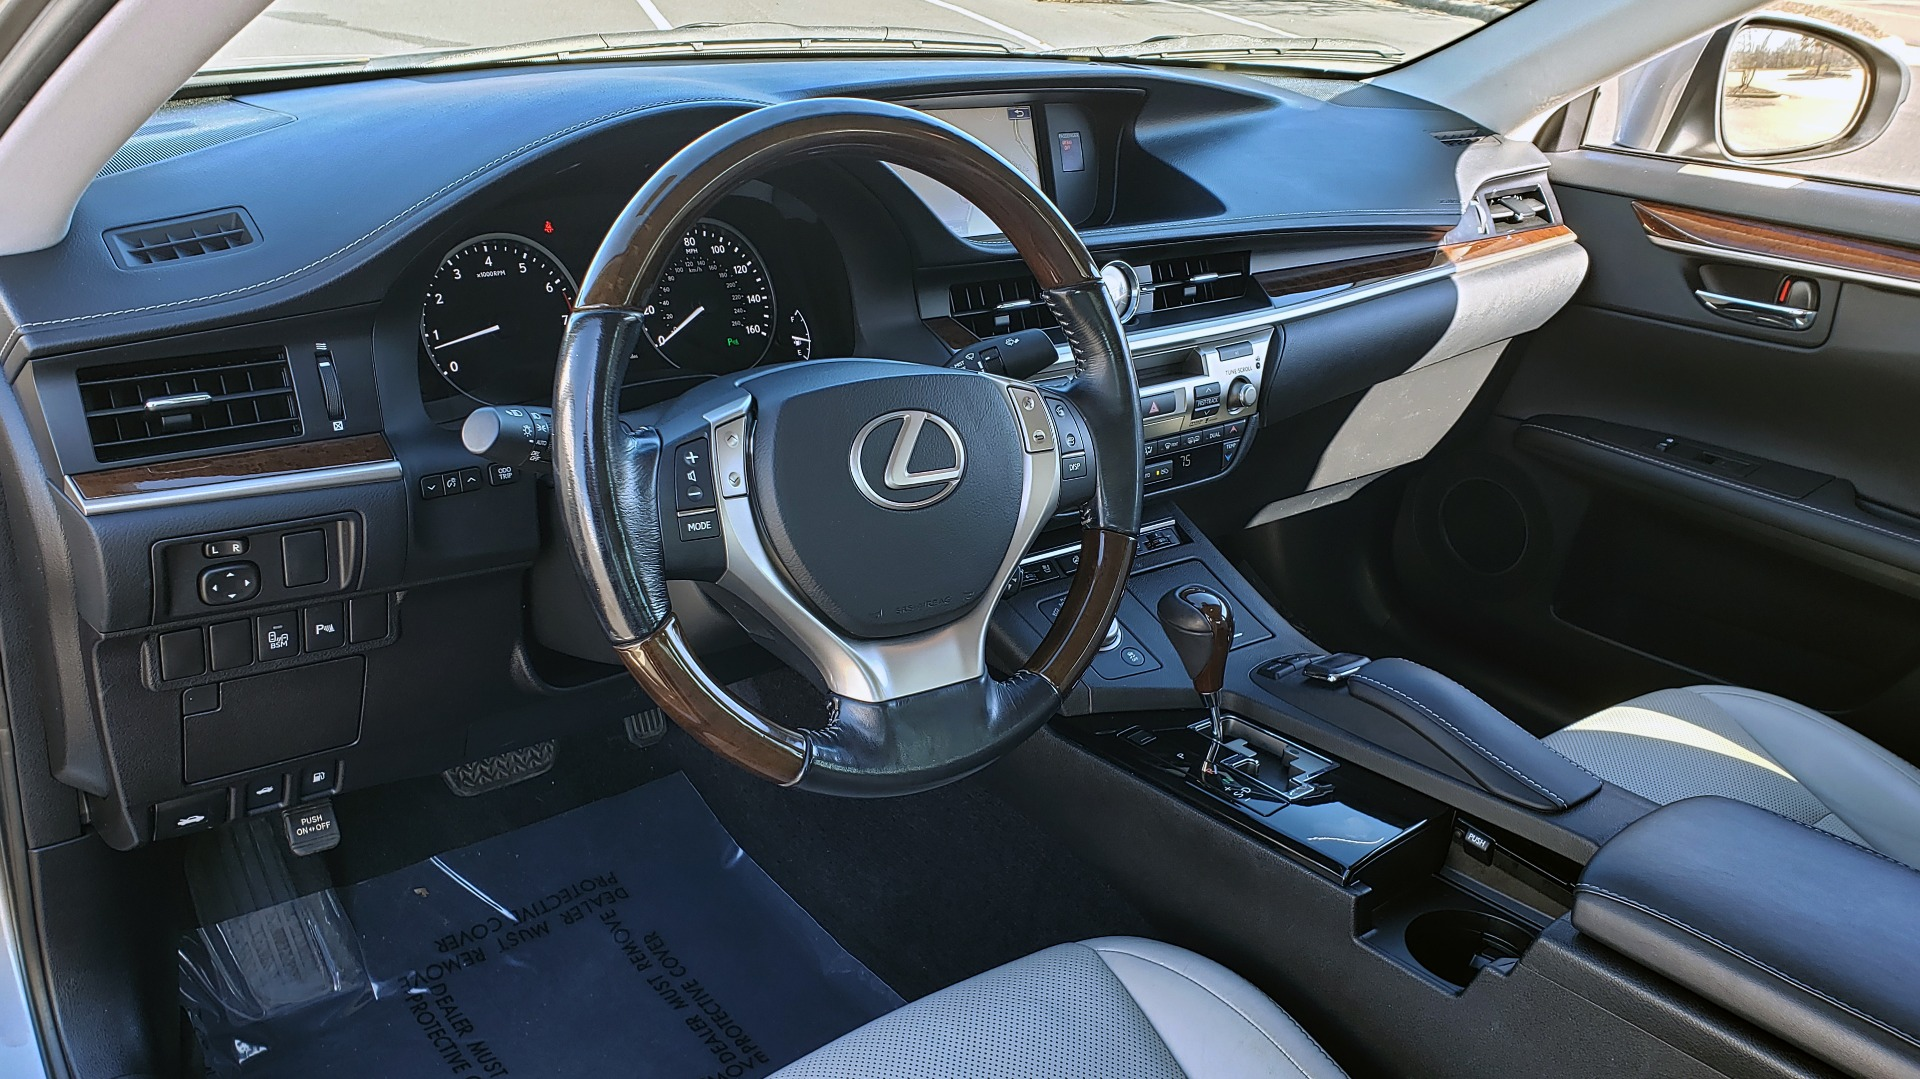 Used 2015 Lexus ES 350 LUXURY PKG / NAV / BSM / LCA / PARK ASSIST / REARVIEW for sale Sold at Formula Imports in Charlotte NC 28227 32